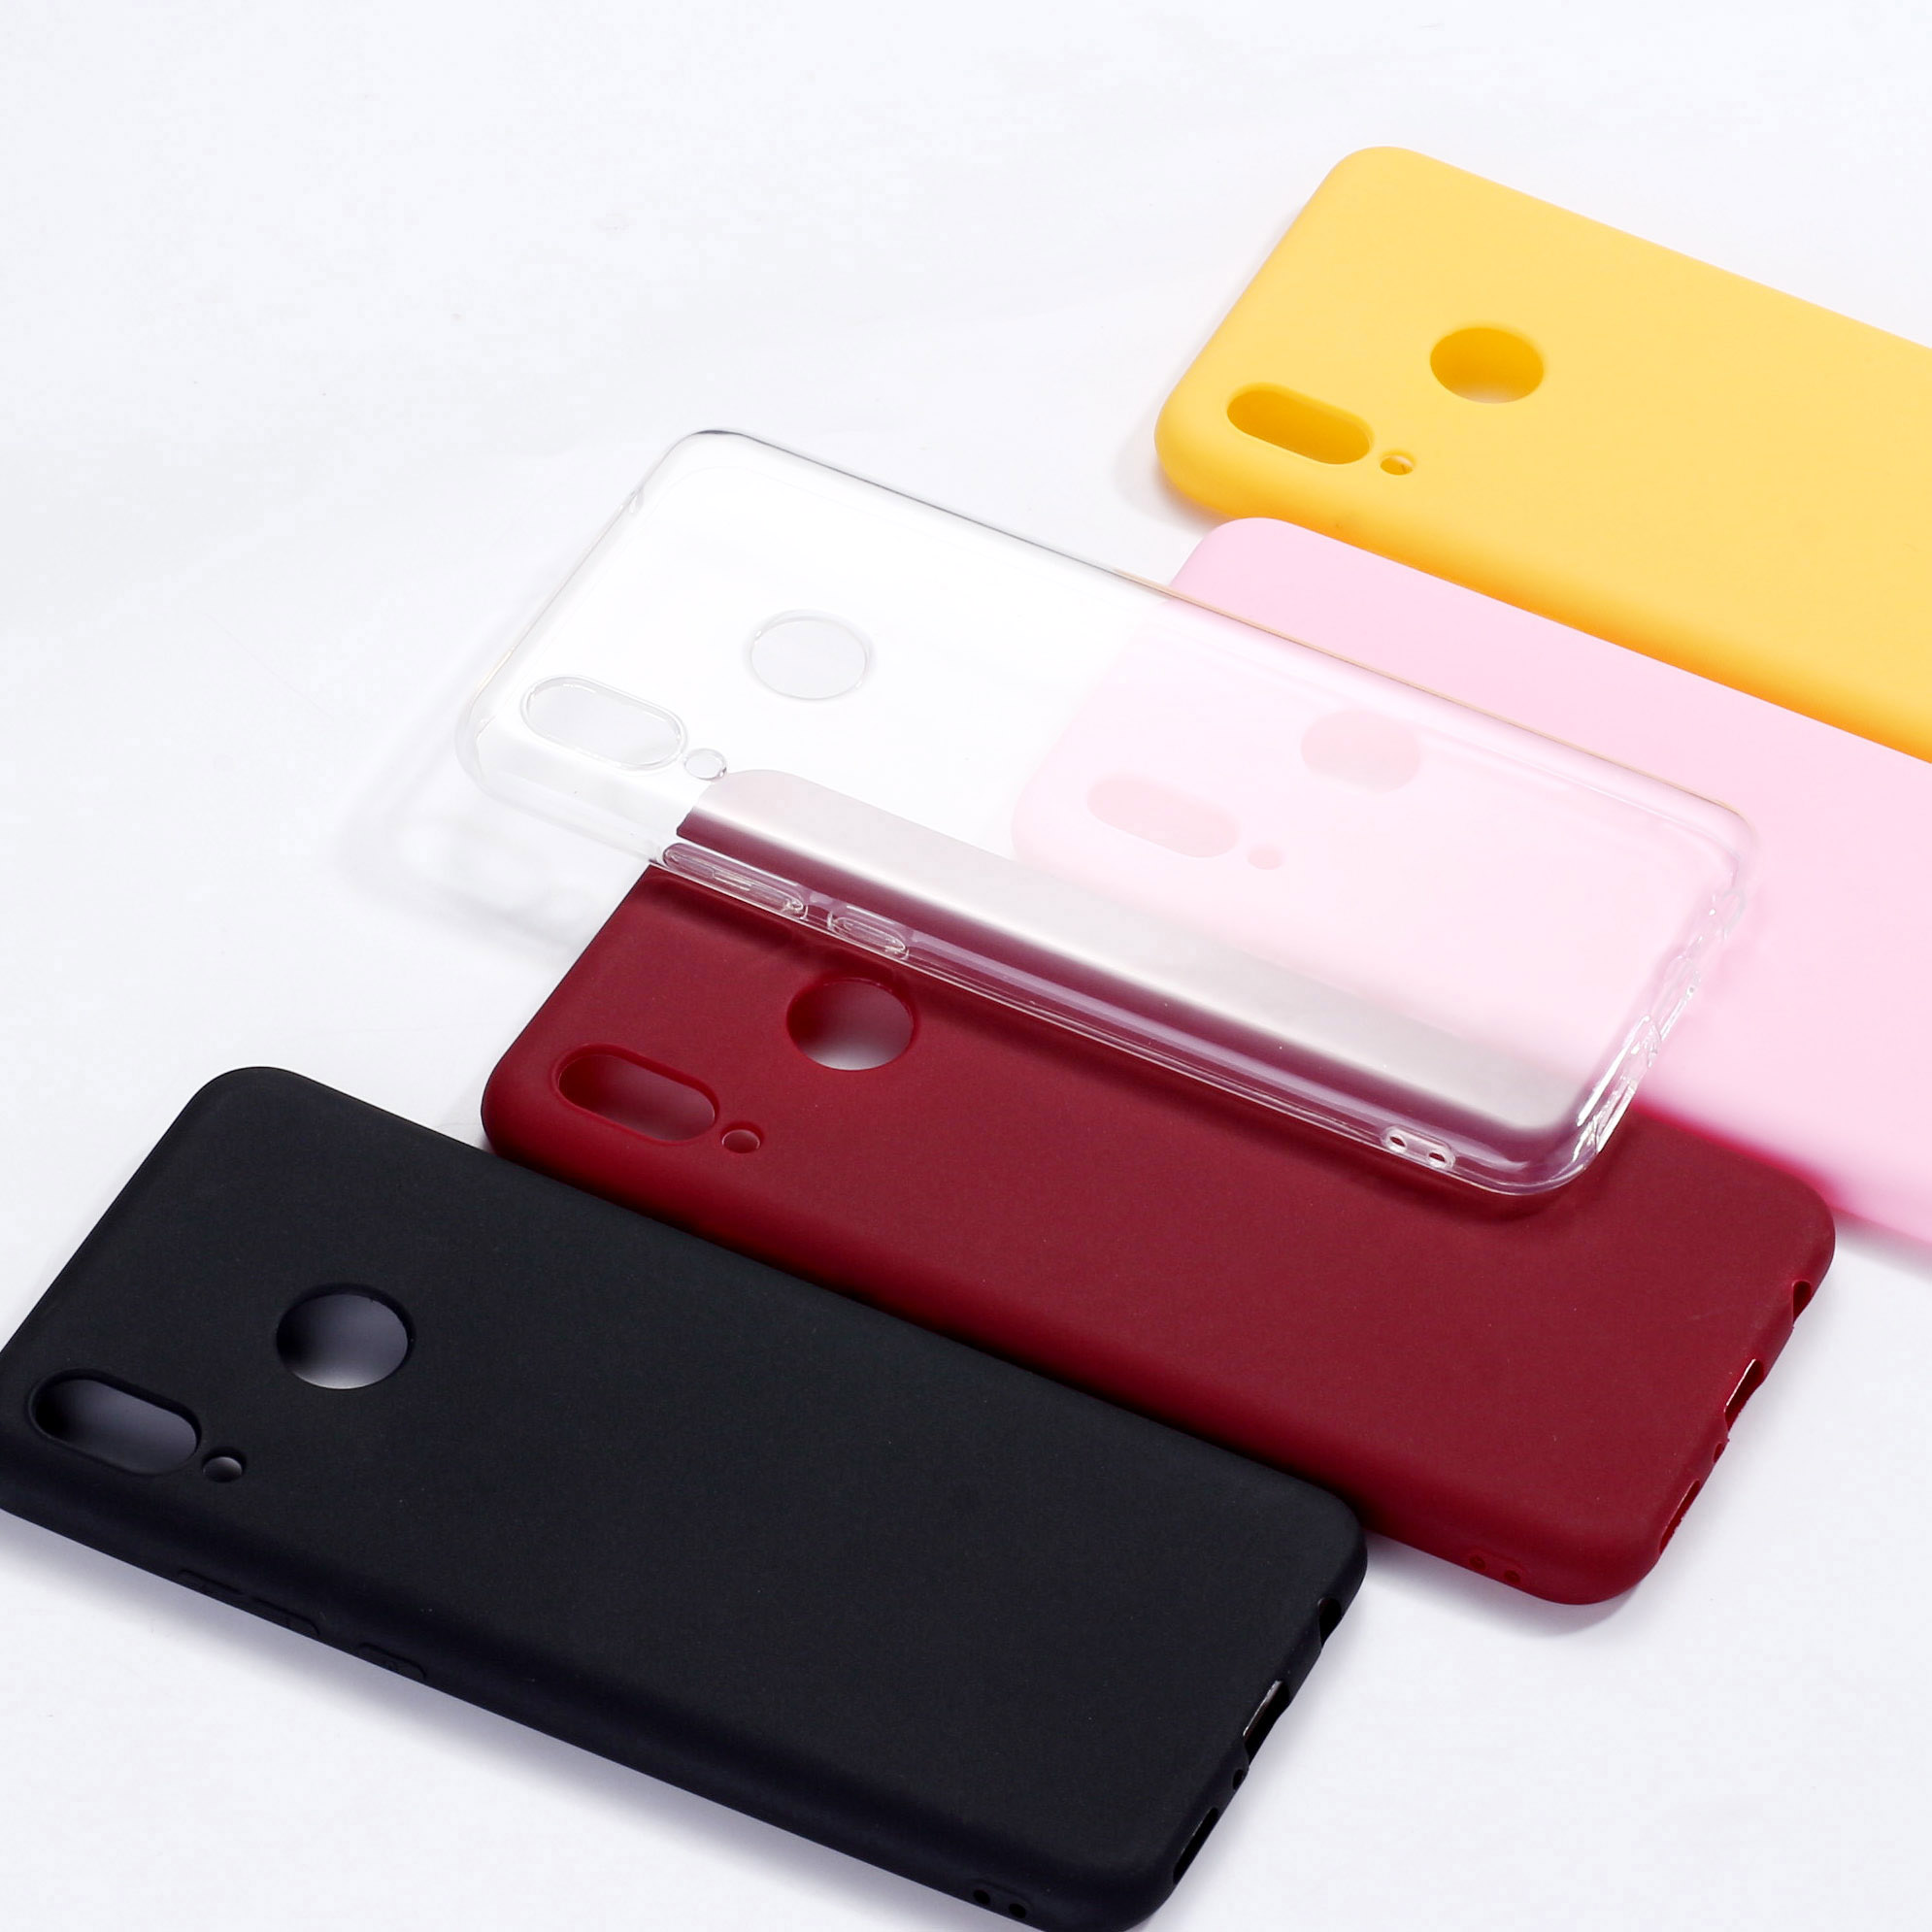 Simple Solid Color For <font><b>Xiaomi</b></font> Mi <font><b>Redmi</b></font> <font><b>Note</b></font> 5 6 7 8 9 lite <font><b>Pro</b></font> Plus Clear Crystal Candy Silicone Phone Case Cover Funda Coque image